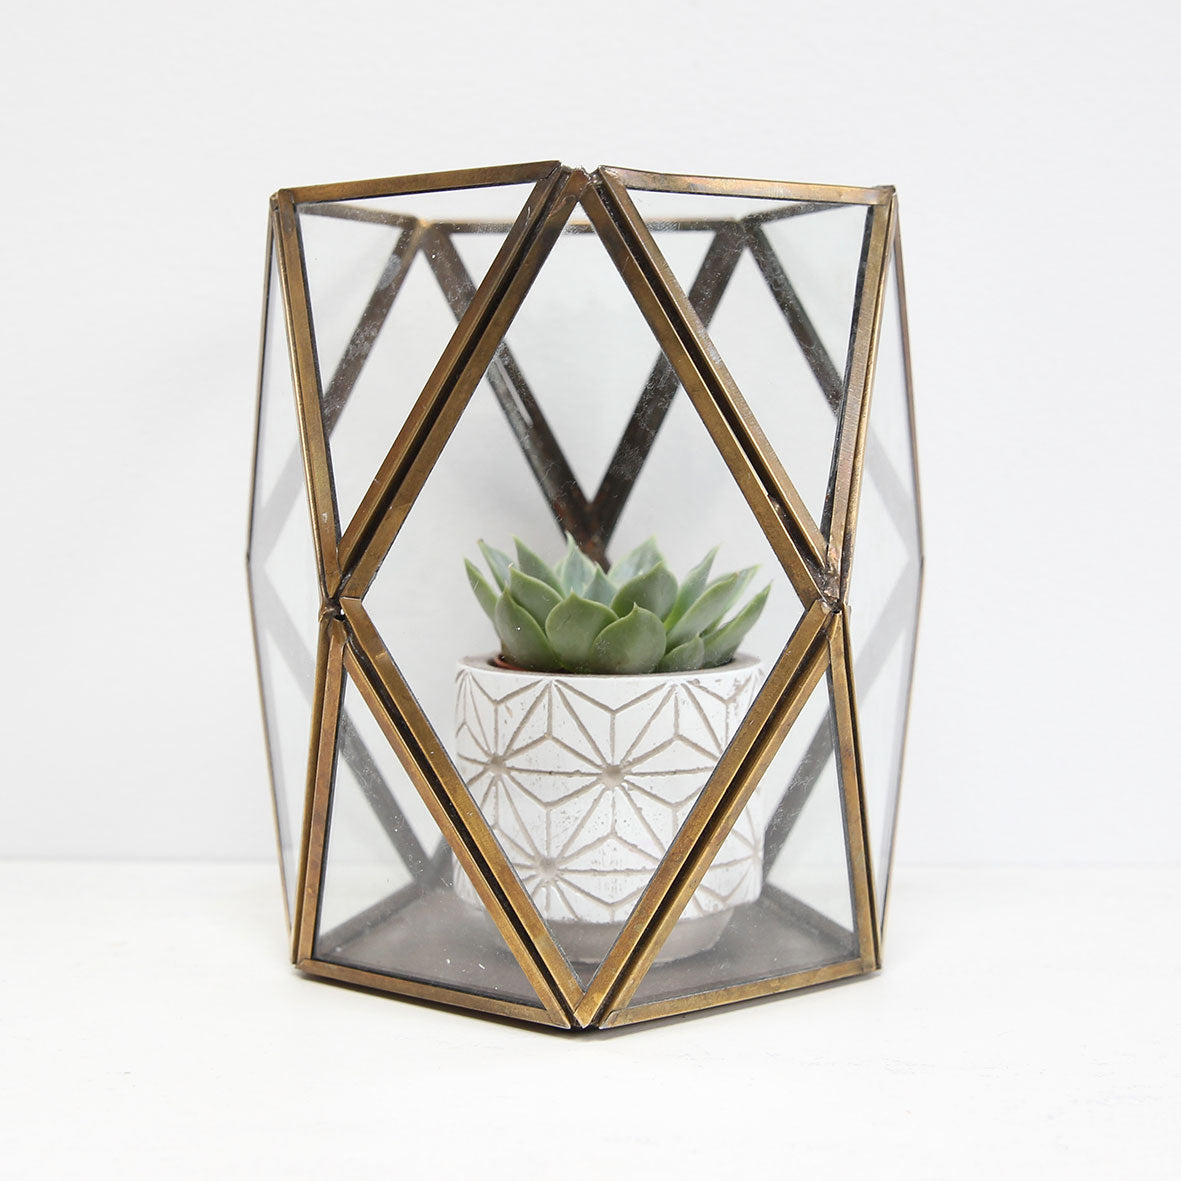 Interlocking diamond candle holder